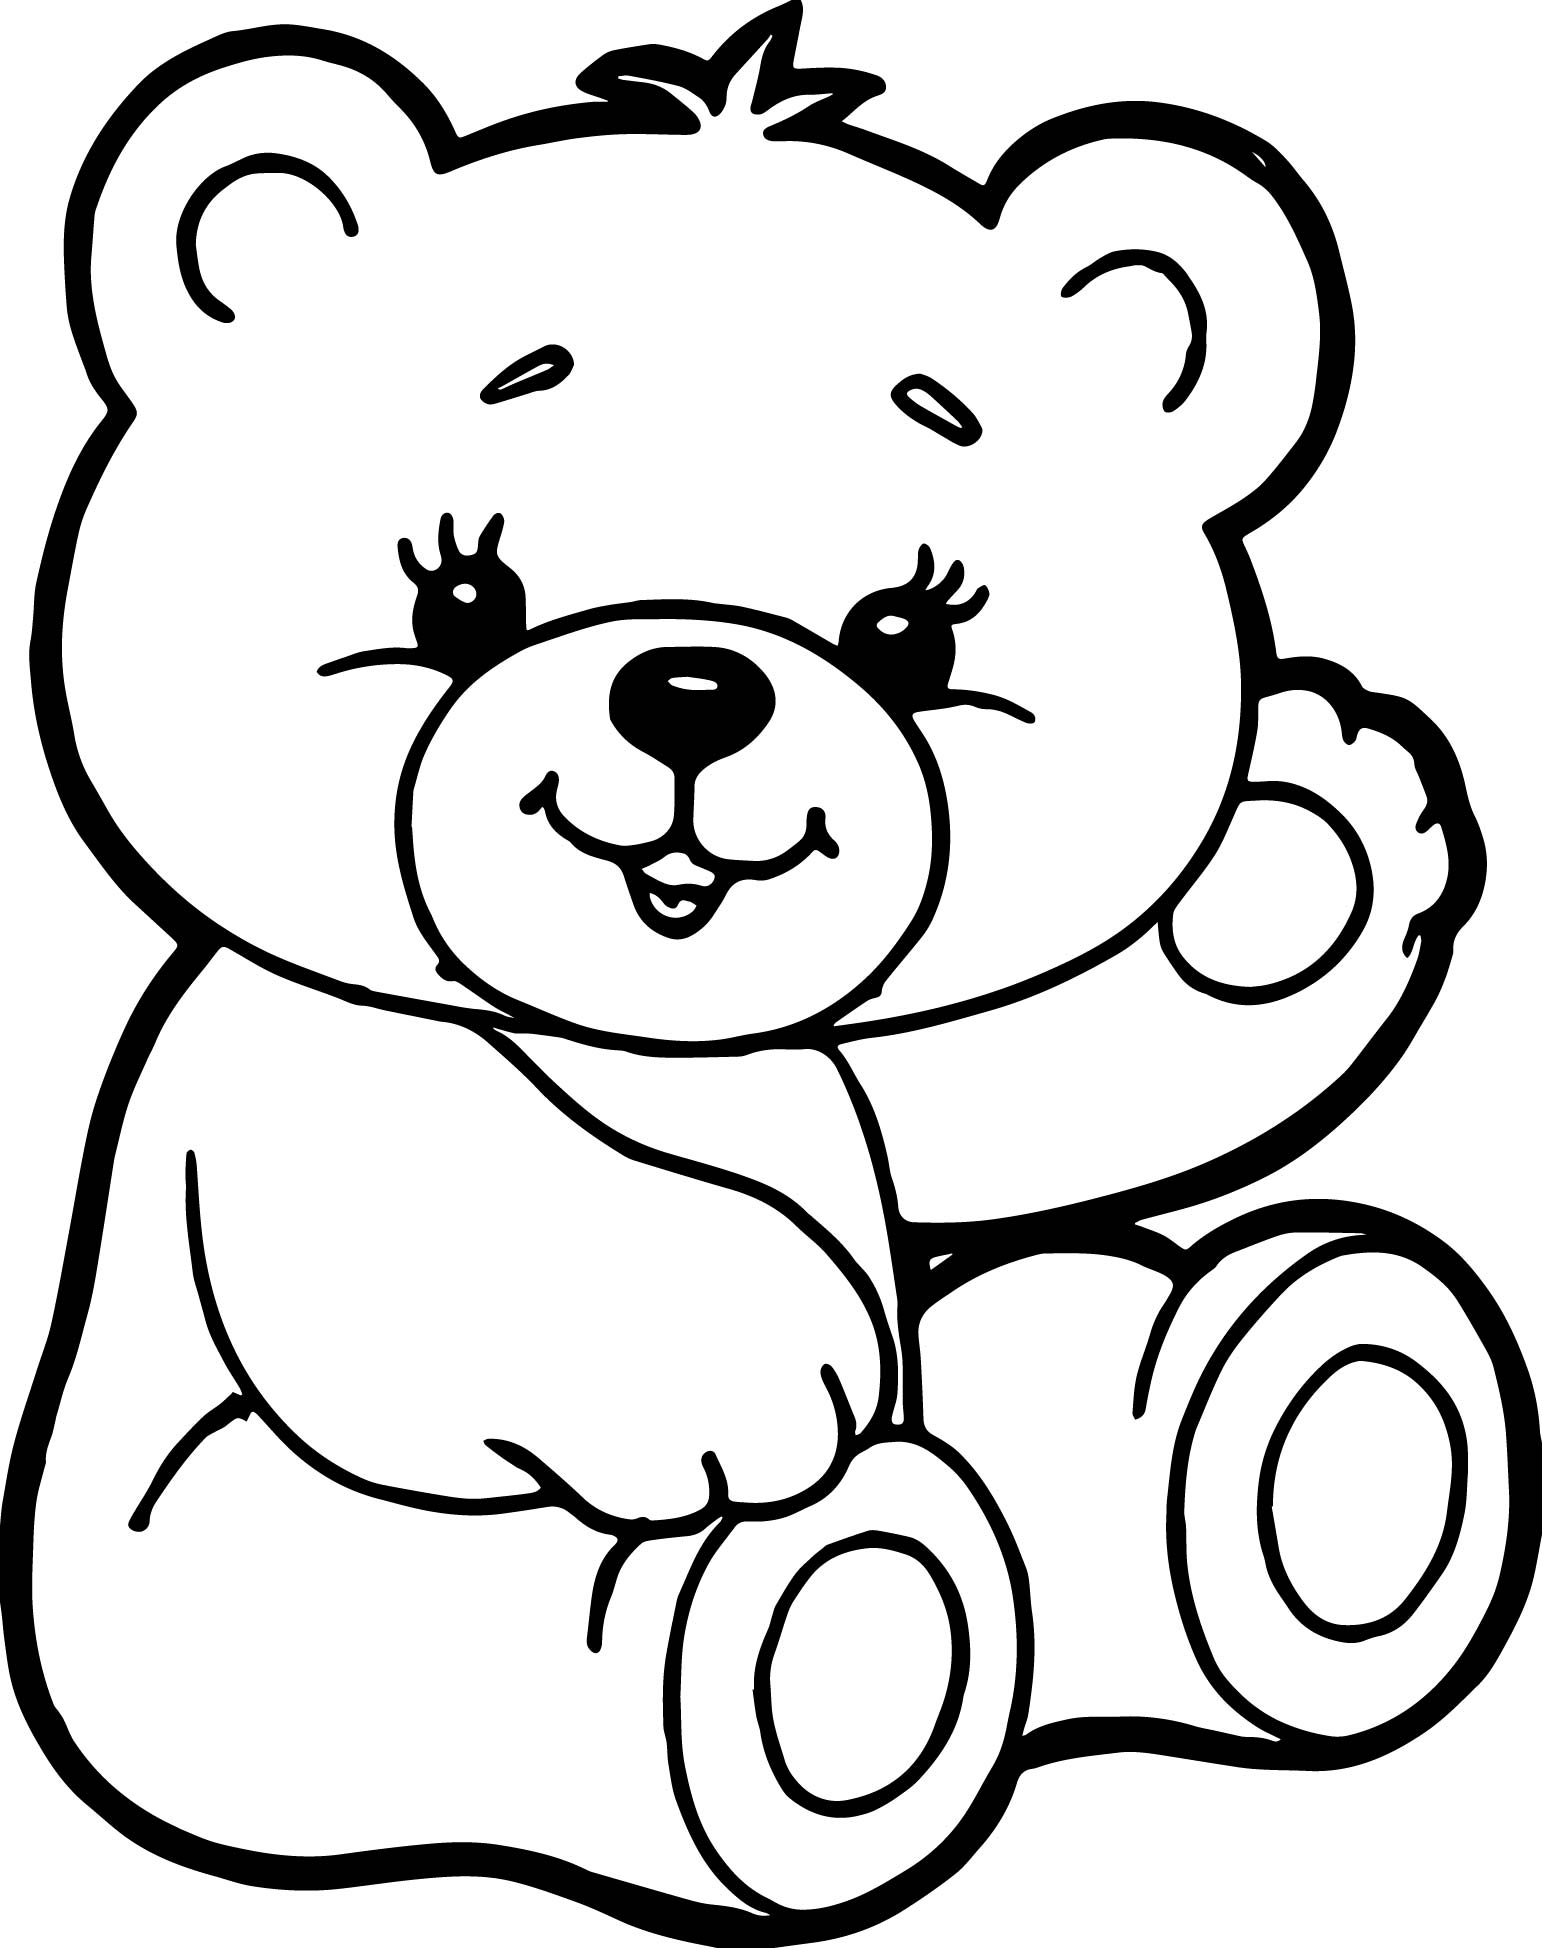 Cute Bear Coloring Page | Wecoloringpage